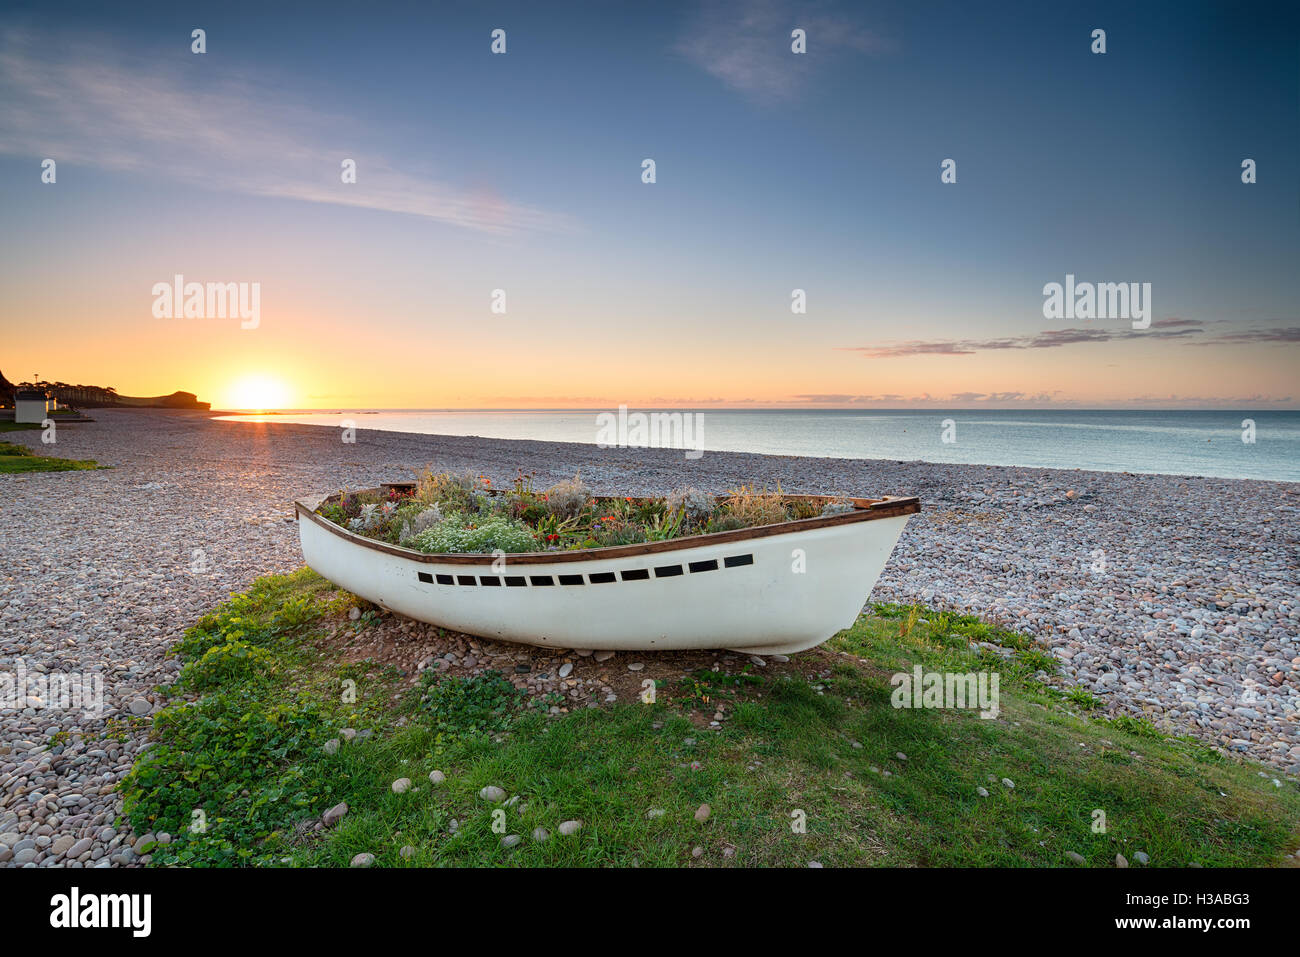 The beach at Budleigh Salterton on the Devon coast - Stock Image